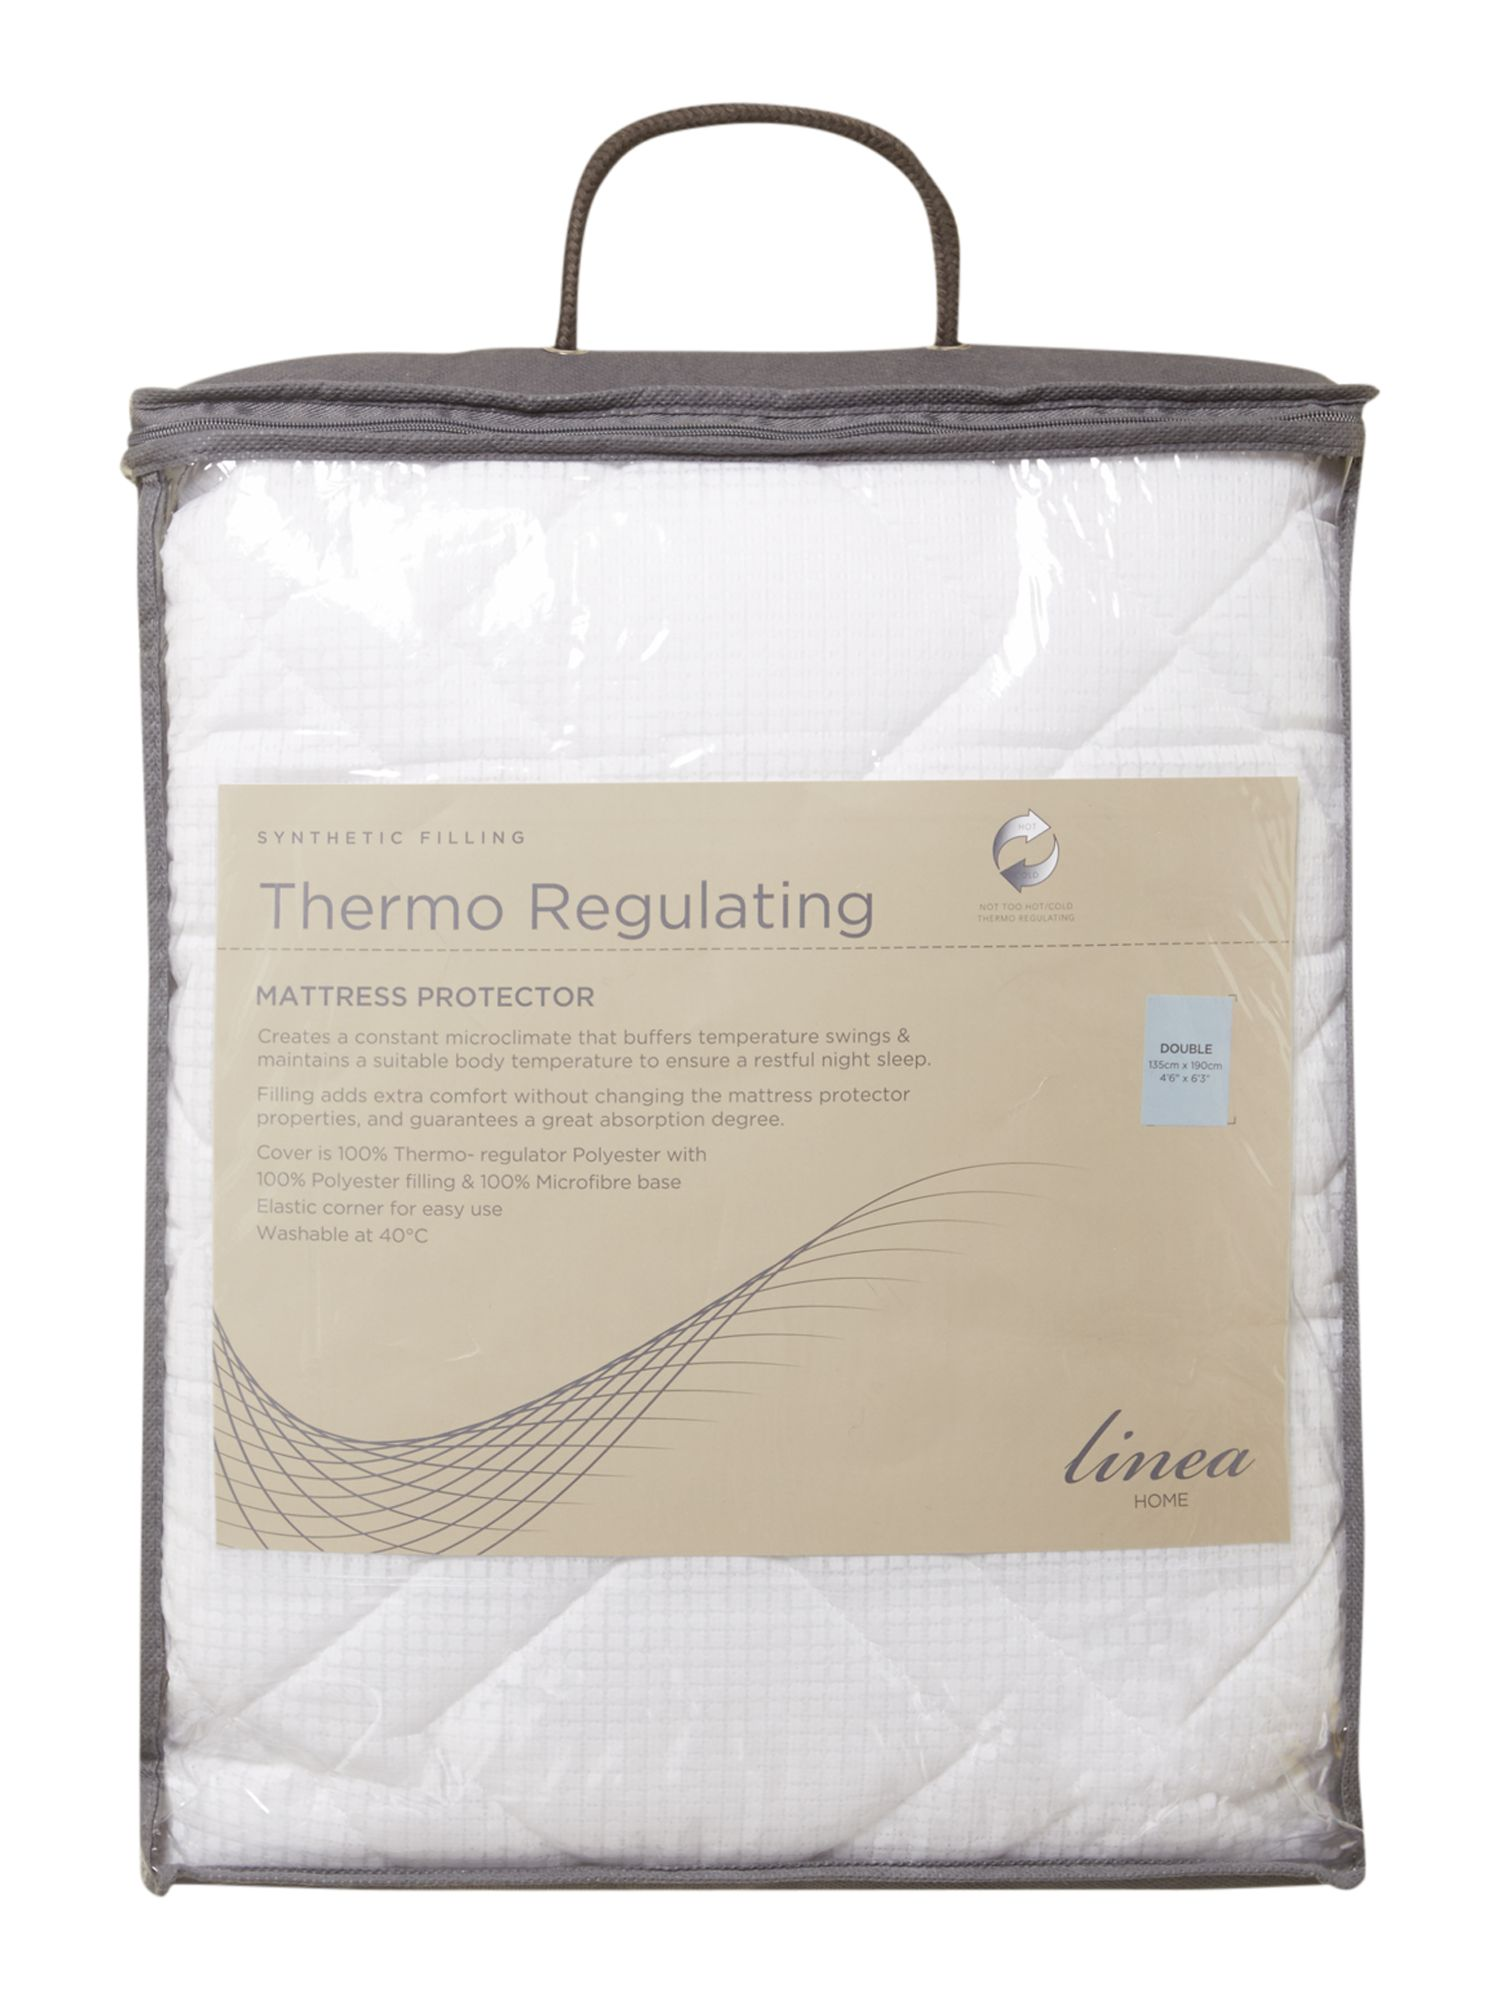 Thermo regulating mattress protectors